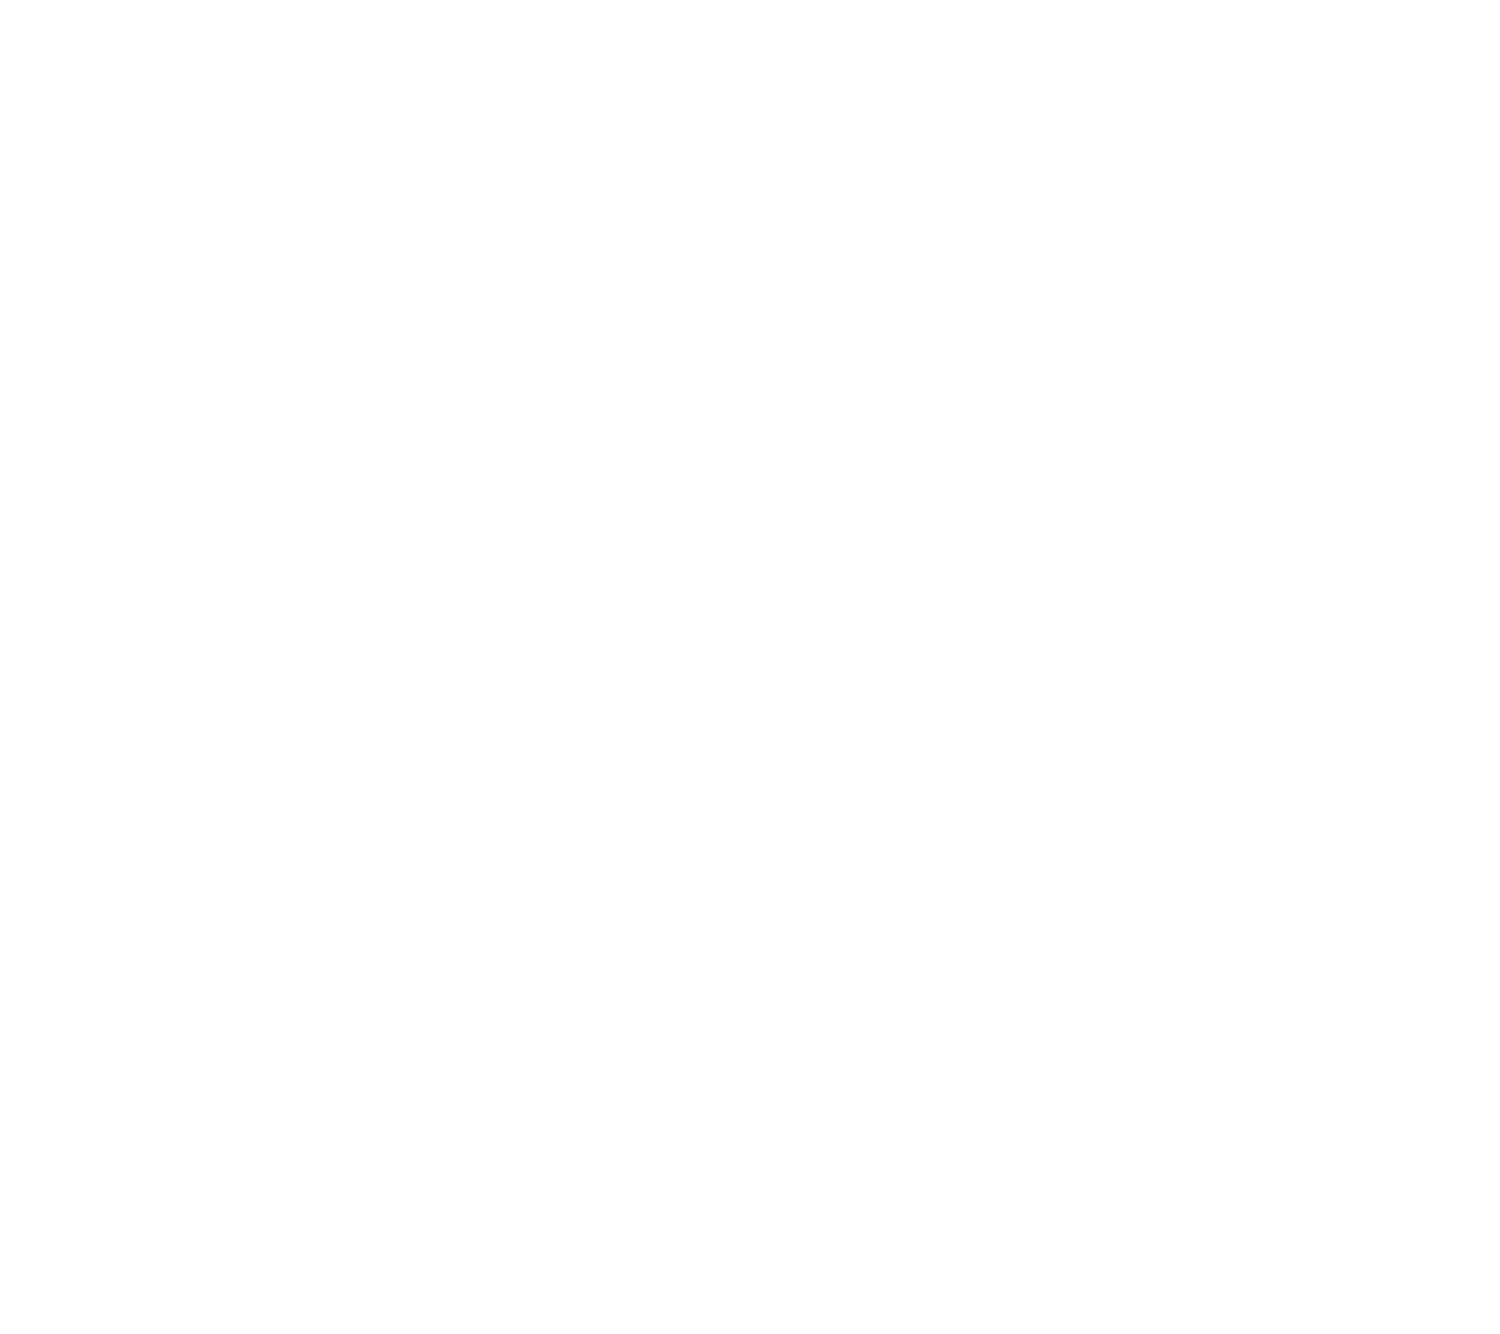 AKOTA Home Care